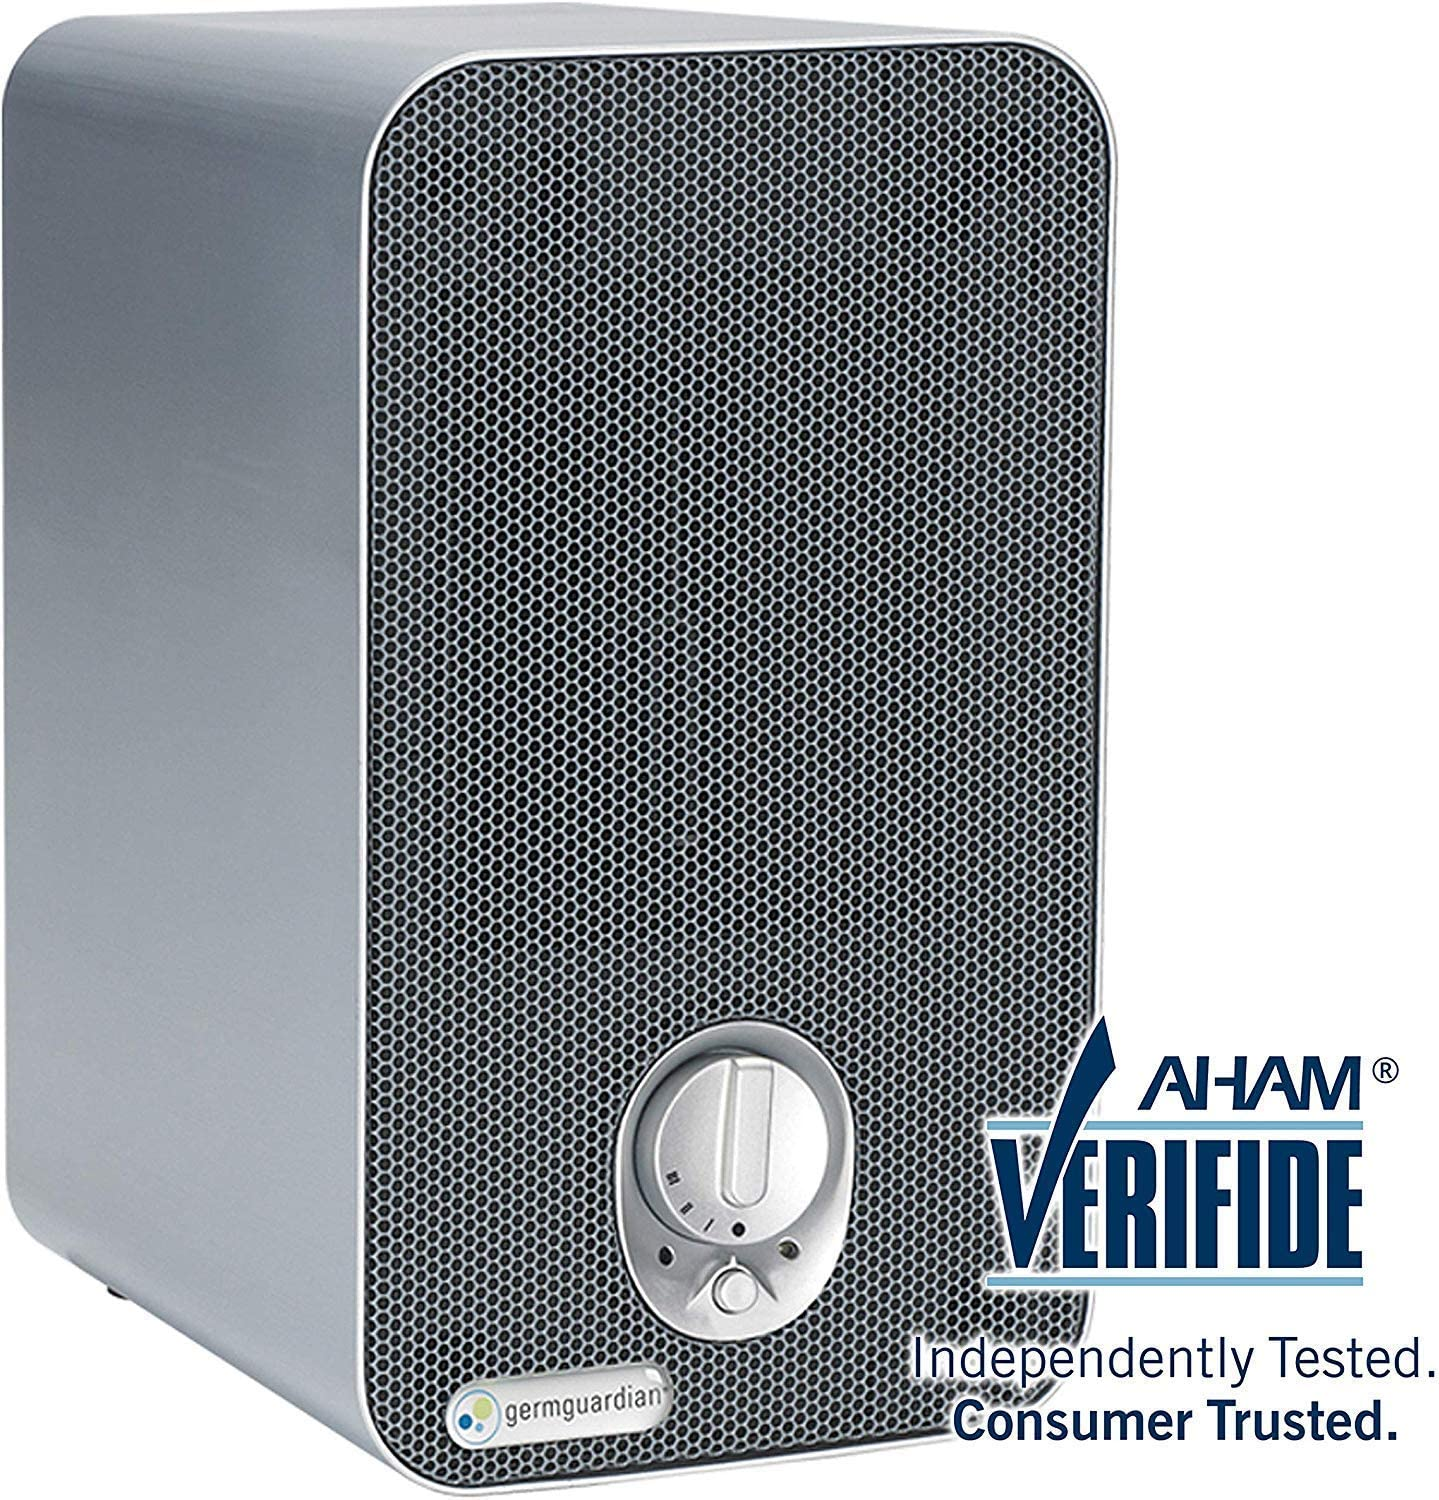 GermGuardian AC4100 3-in-1 HEPA Air Purifier System with UV Sanitizer and Odor Reduction, 11-Inch Table Top Tower by Guardian Technologies